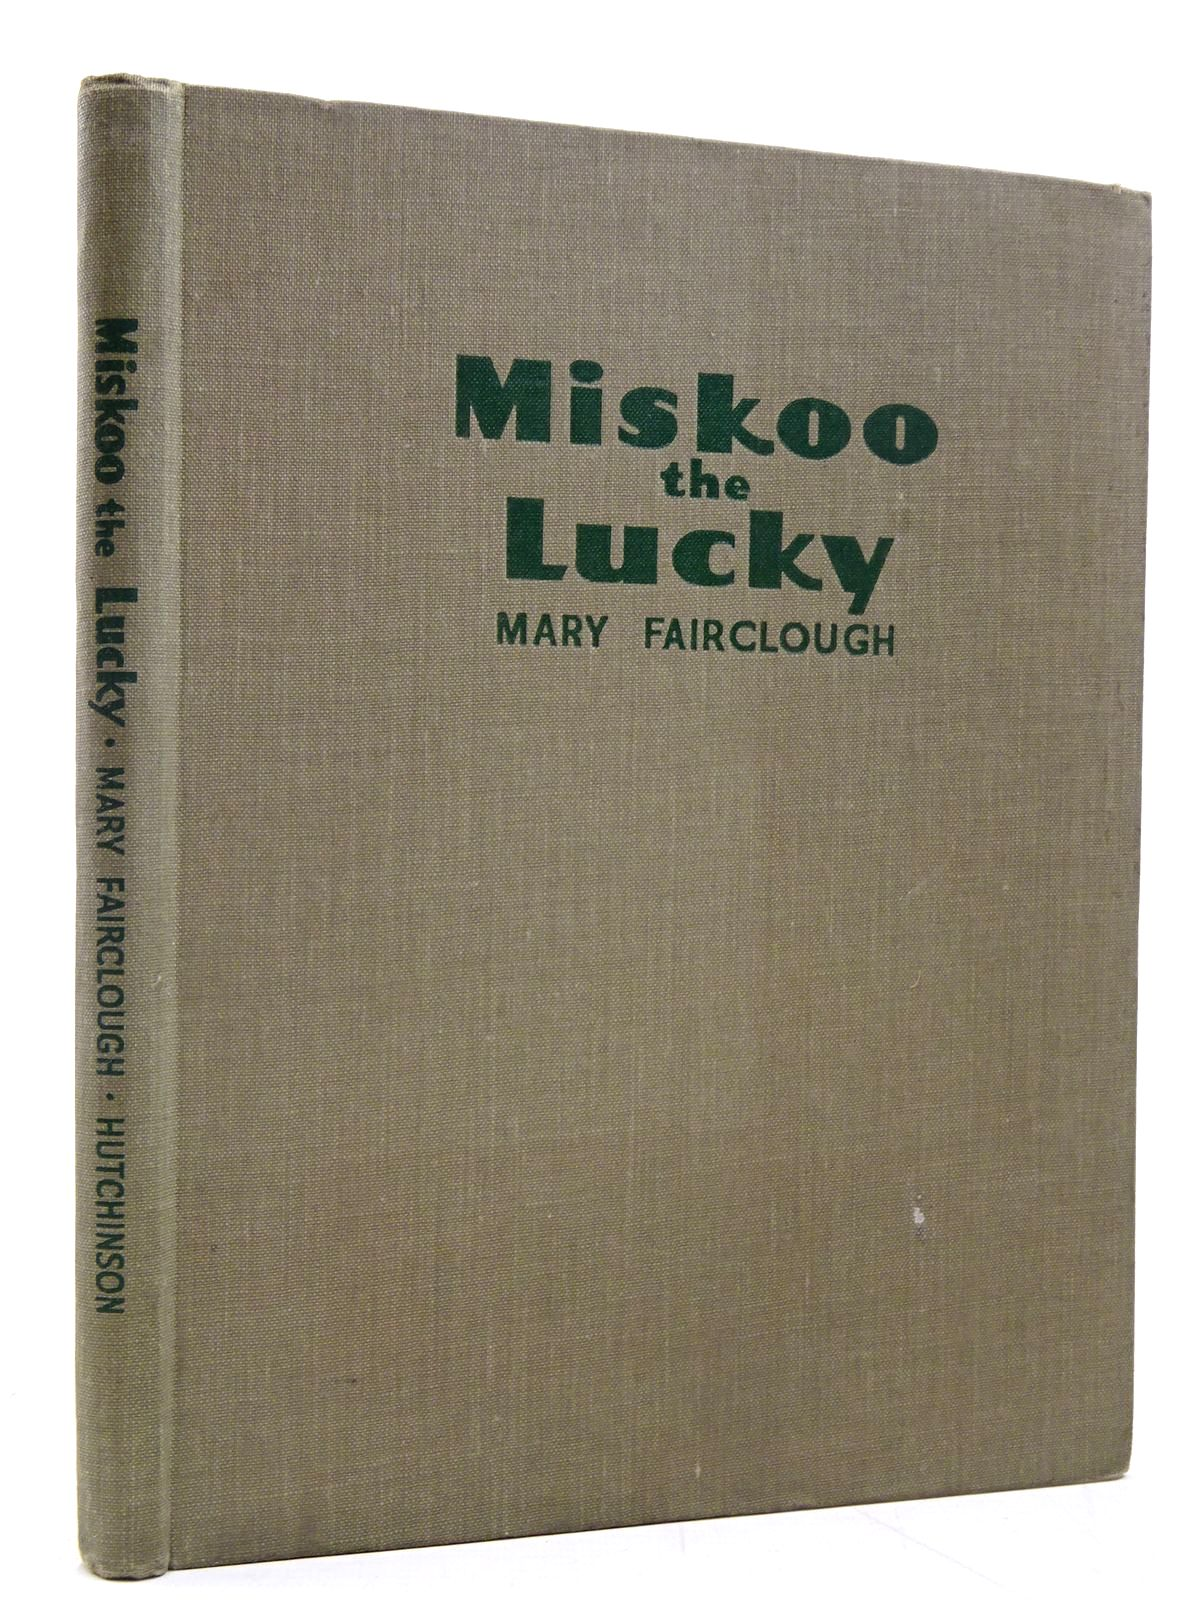 Photo of MISKOO THE LUCKY written by Fairclough, Mary illustrated by Fairclough, Mary published by Hutchinson's Books for Young People (STOCK CODE: 2131125)  for sale by Stella & Rose's Books